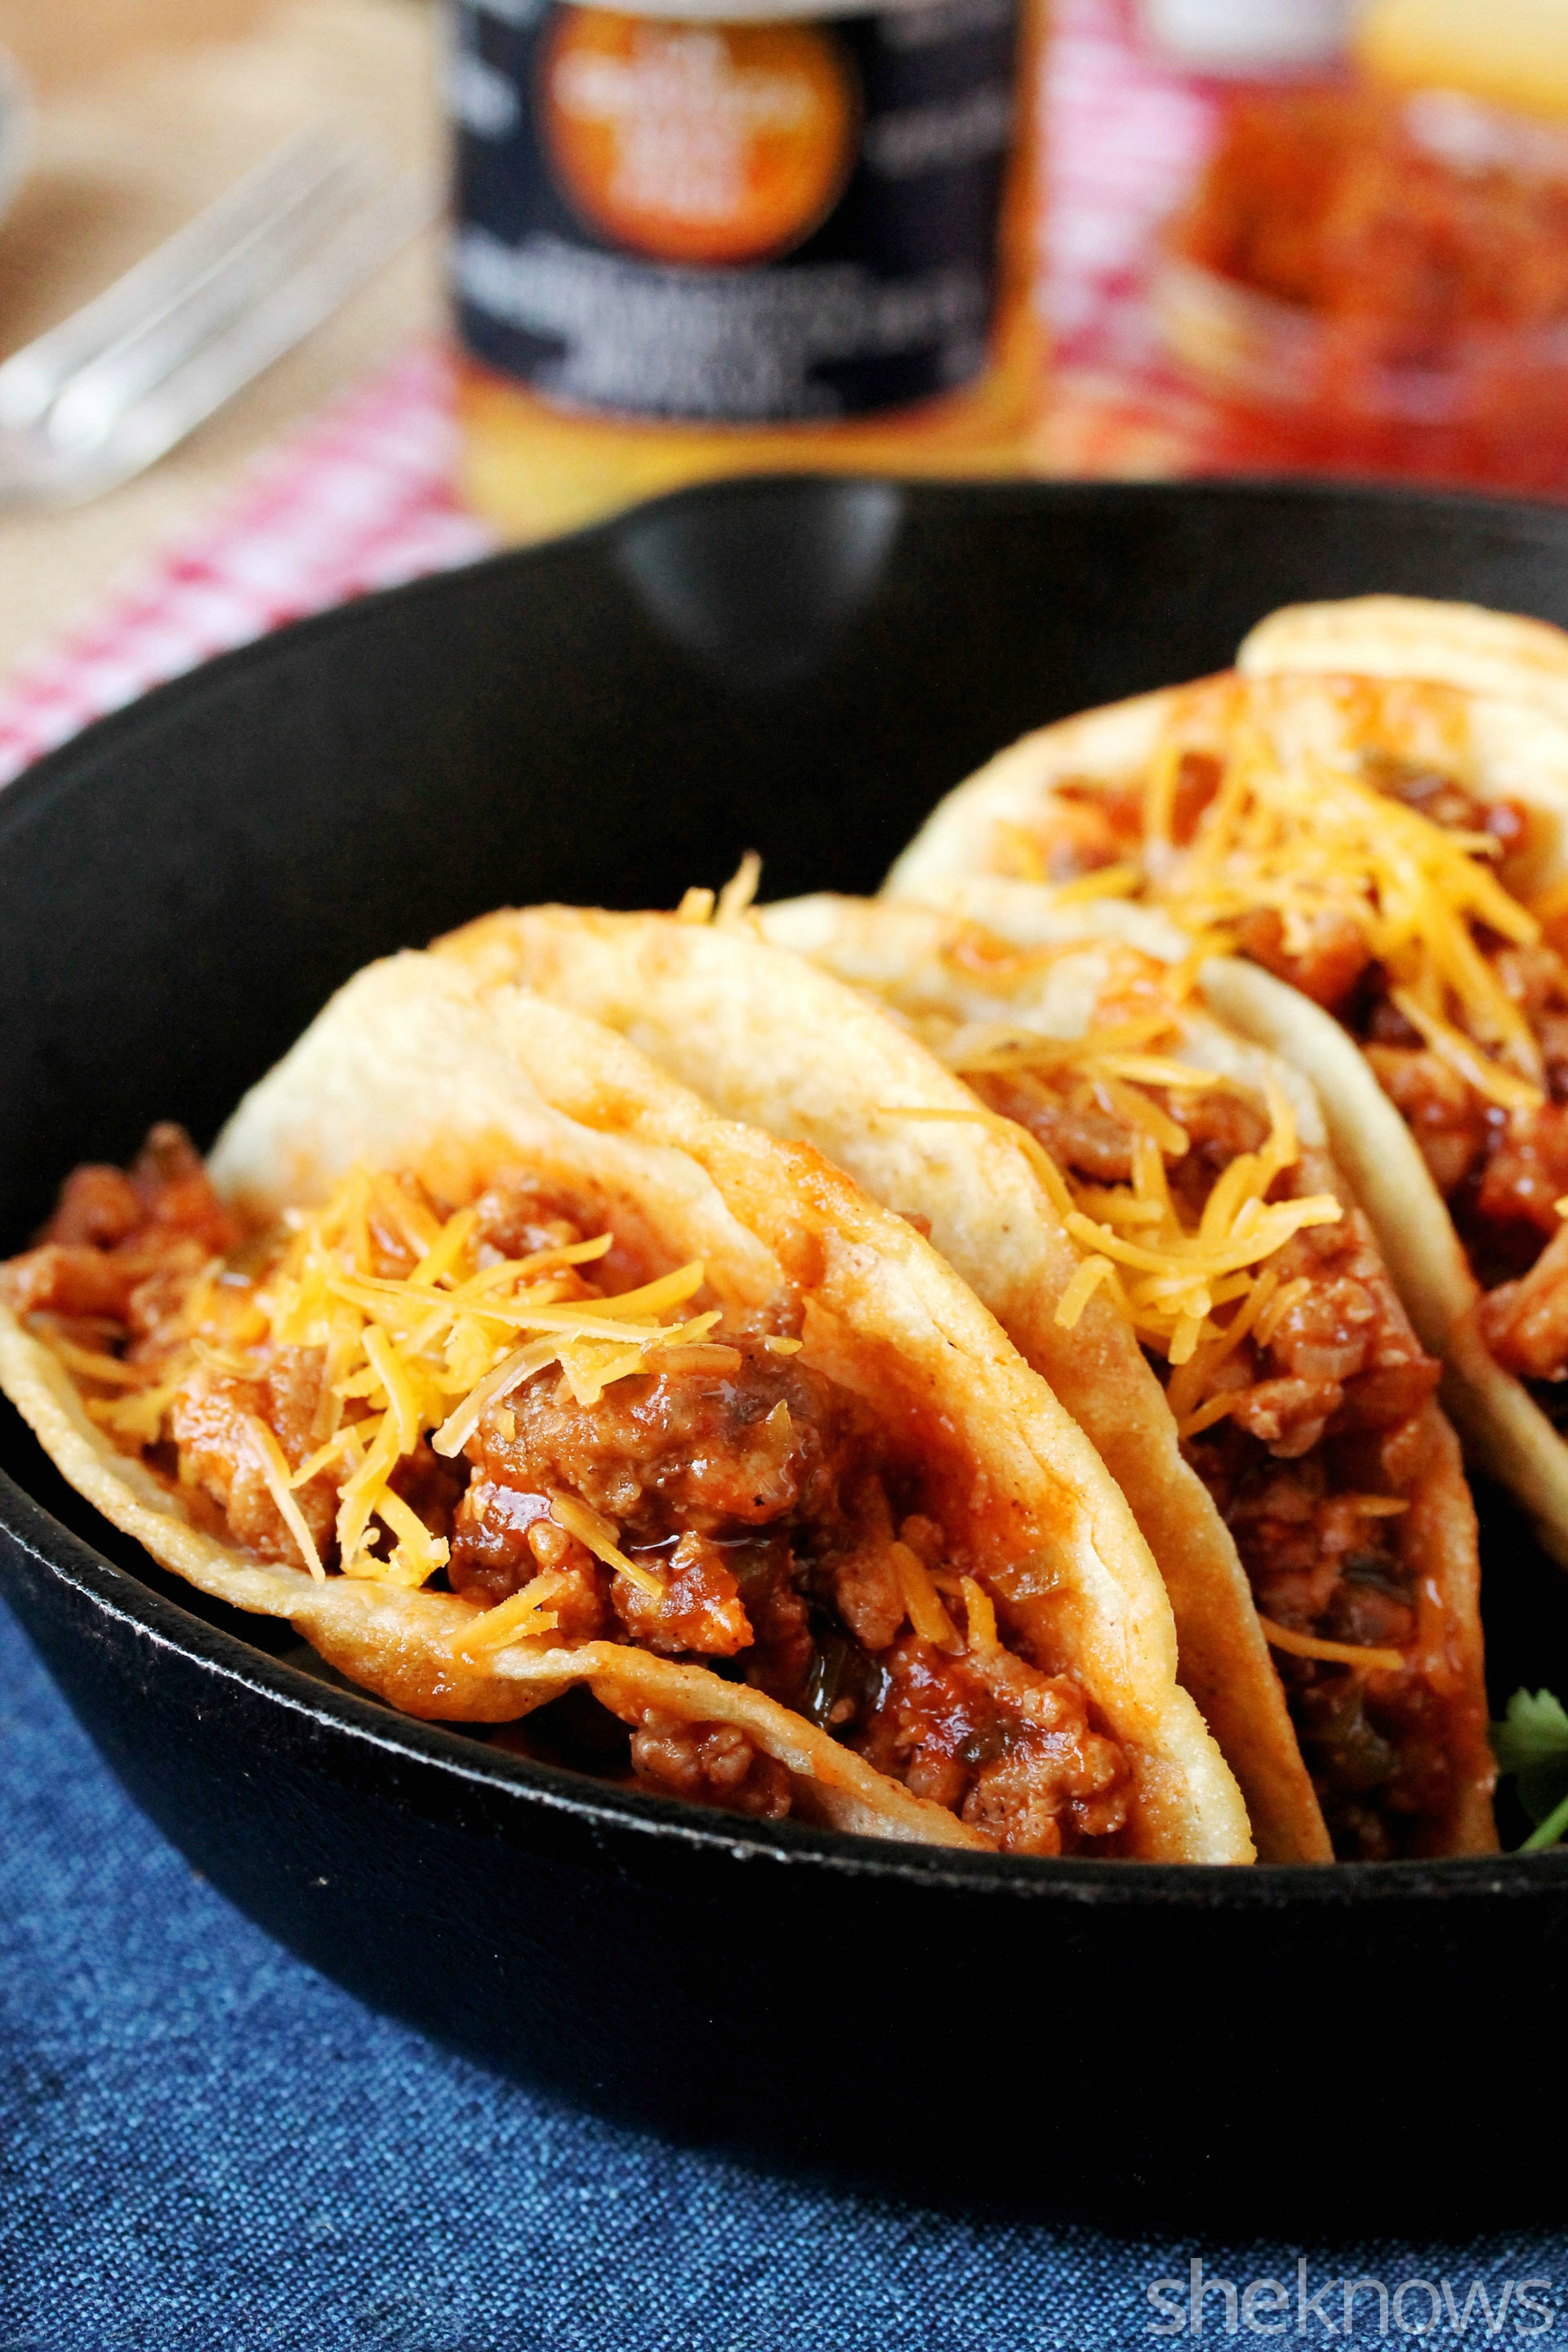 Tacos filled with sloppy joes